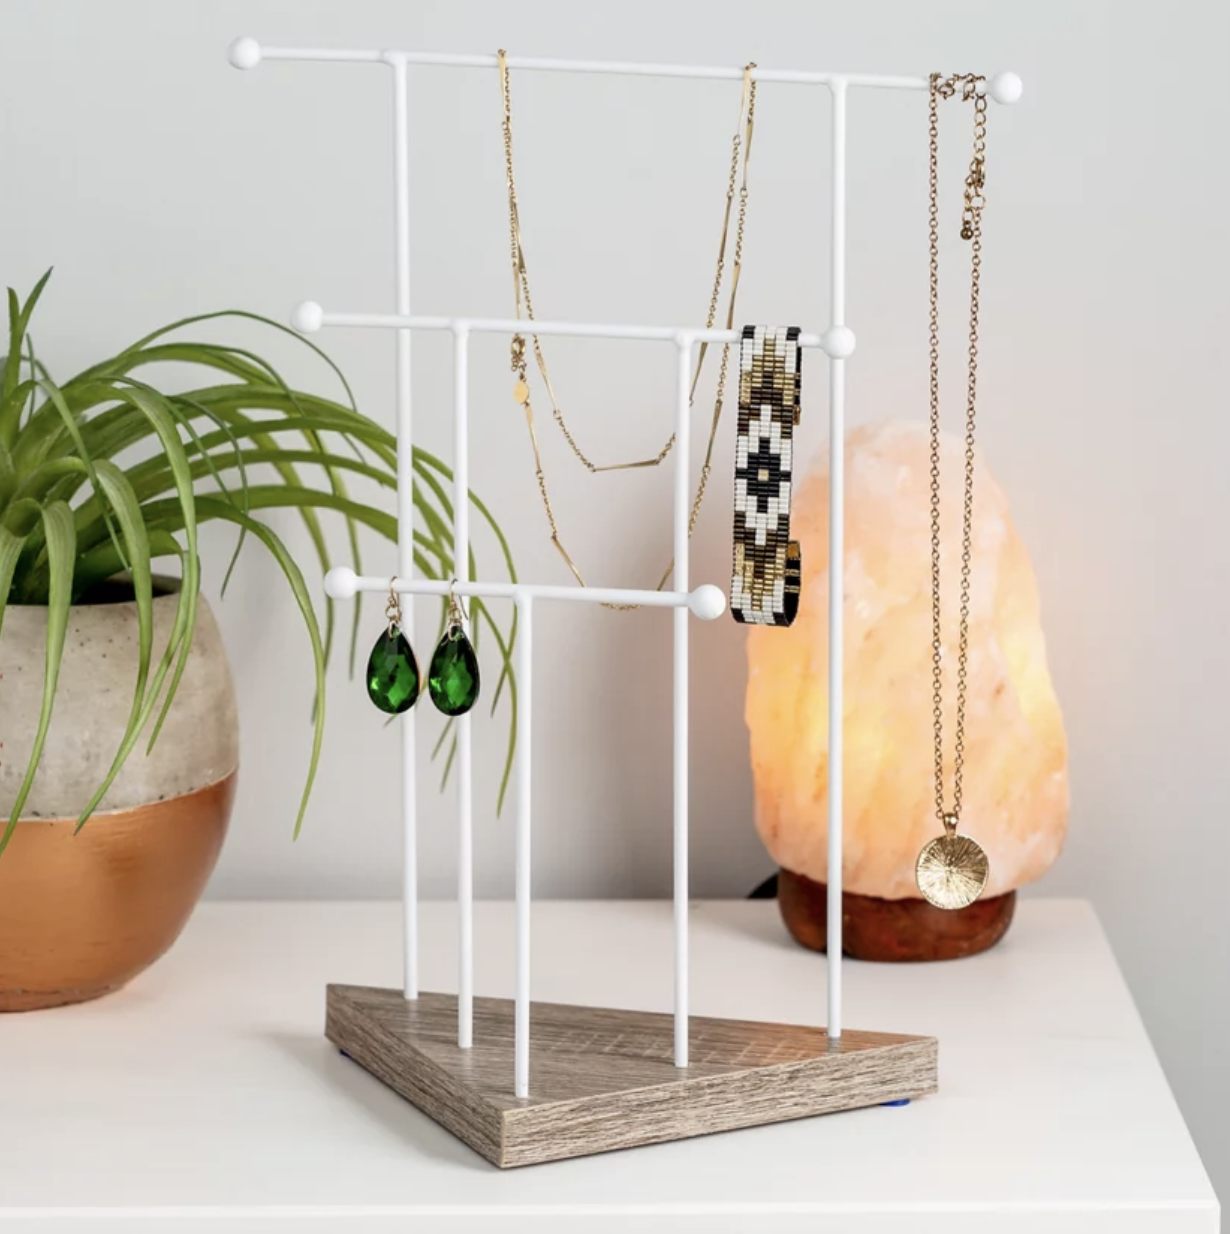 Three-tier jewelry stand with necklaces, earrings and bracelets